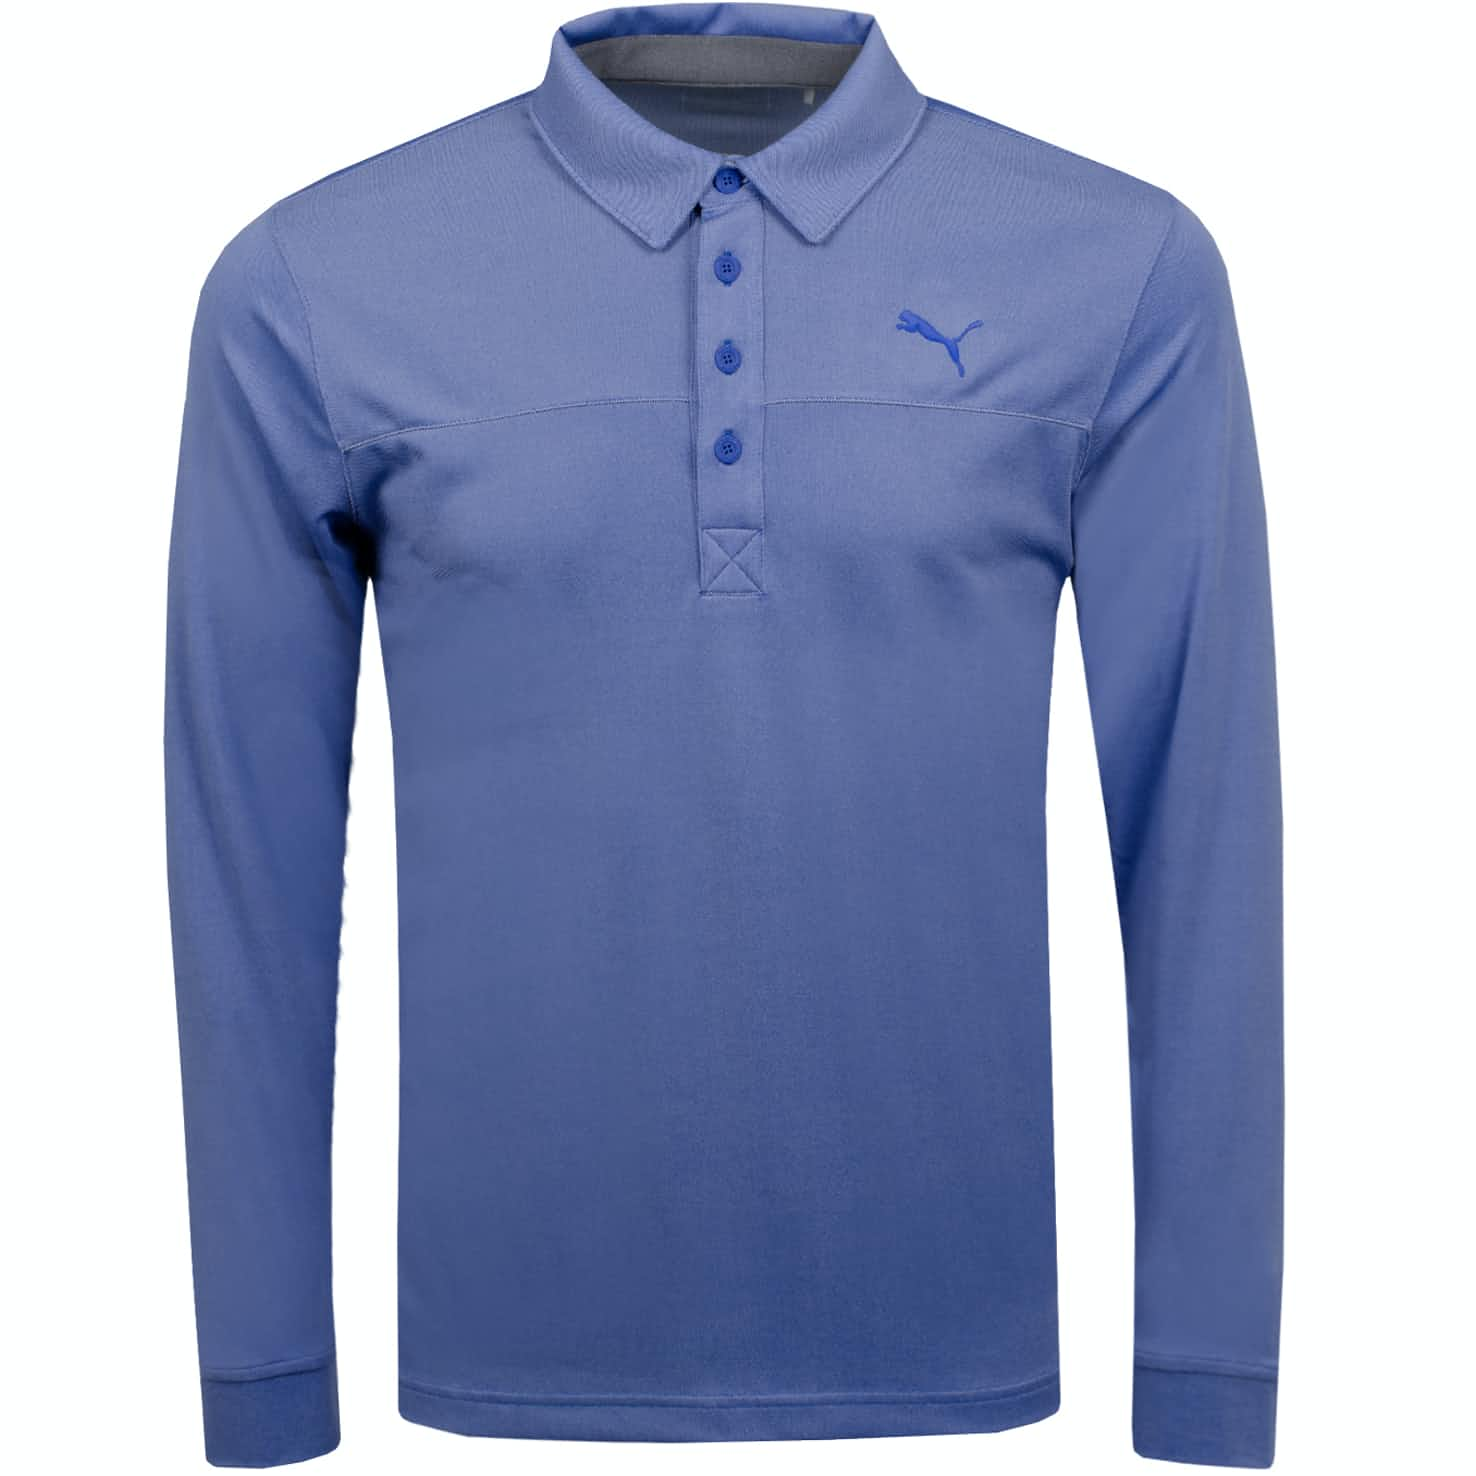 Long Sleeve Polo Dazzling Blue Heather - AW19